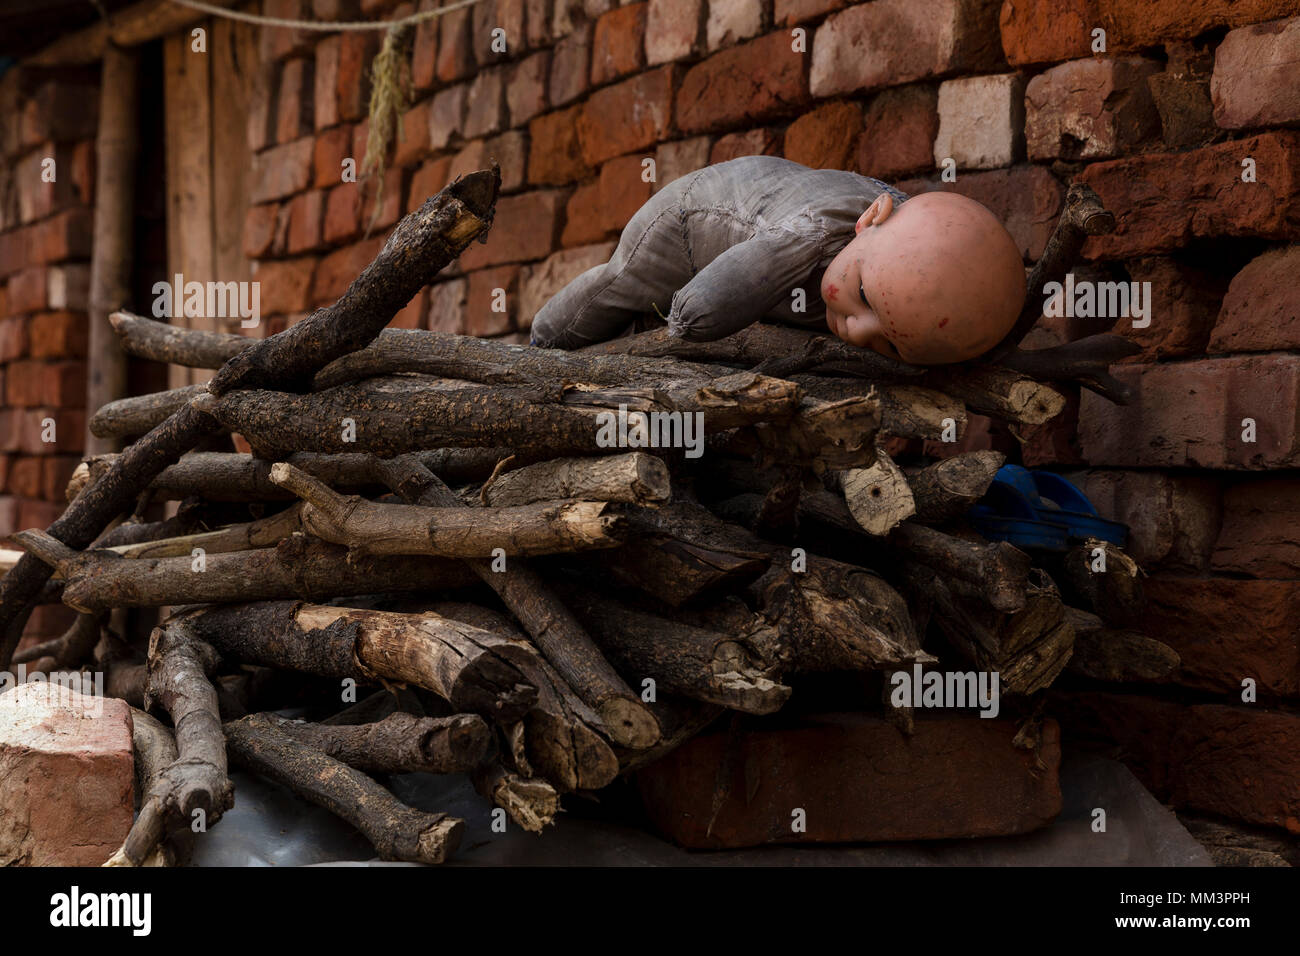 Shack in a brick factory, West Bengal, India - Stock Image